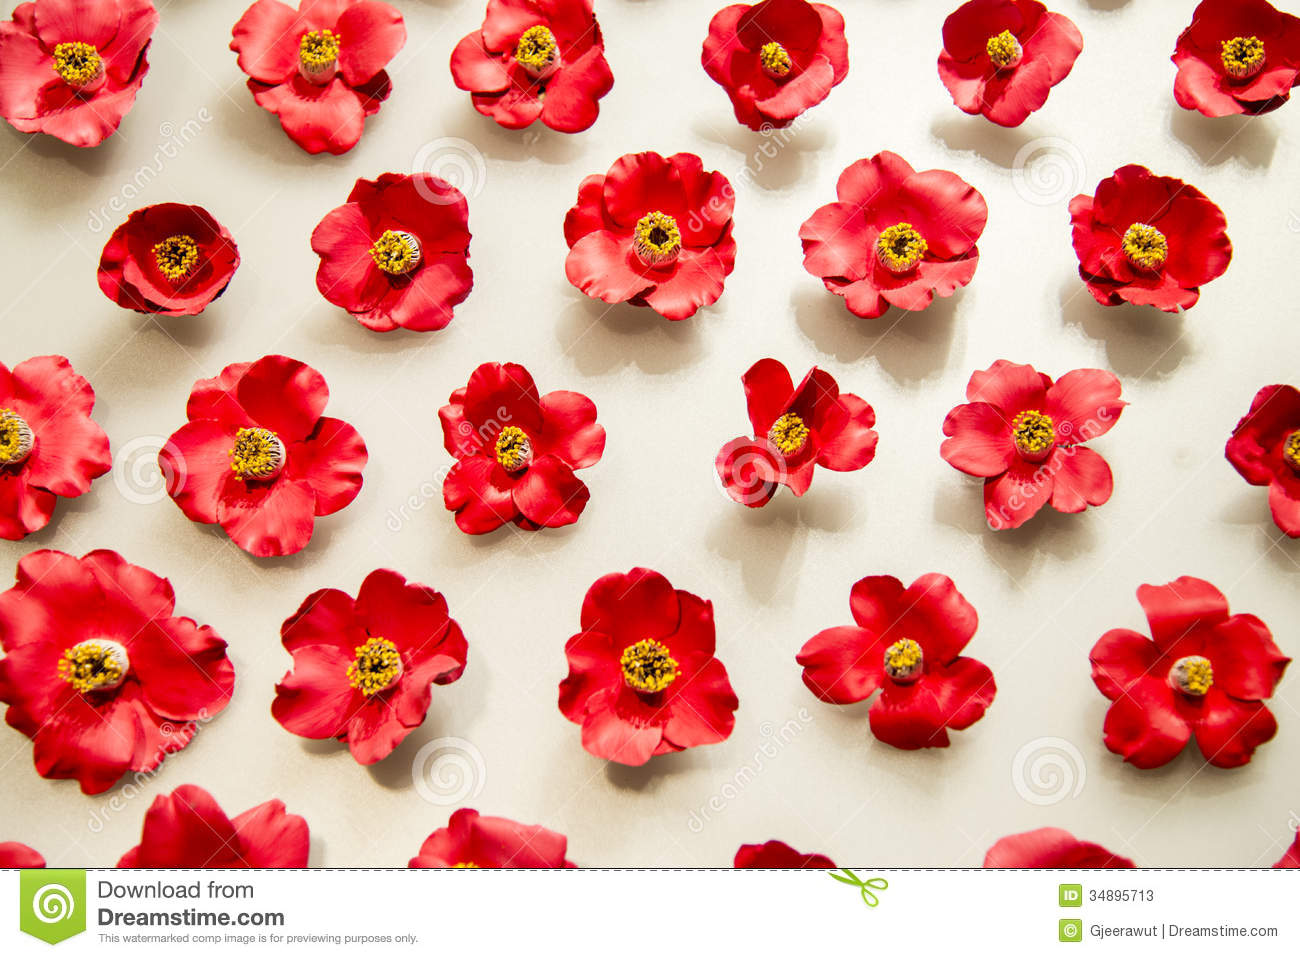 Lot Of Red Camellia Flowers On White Background Stock Photos - Image ...